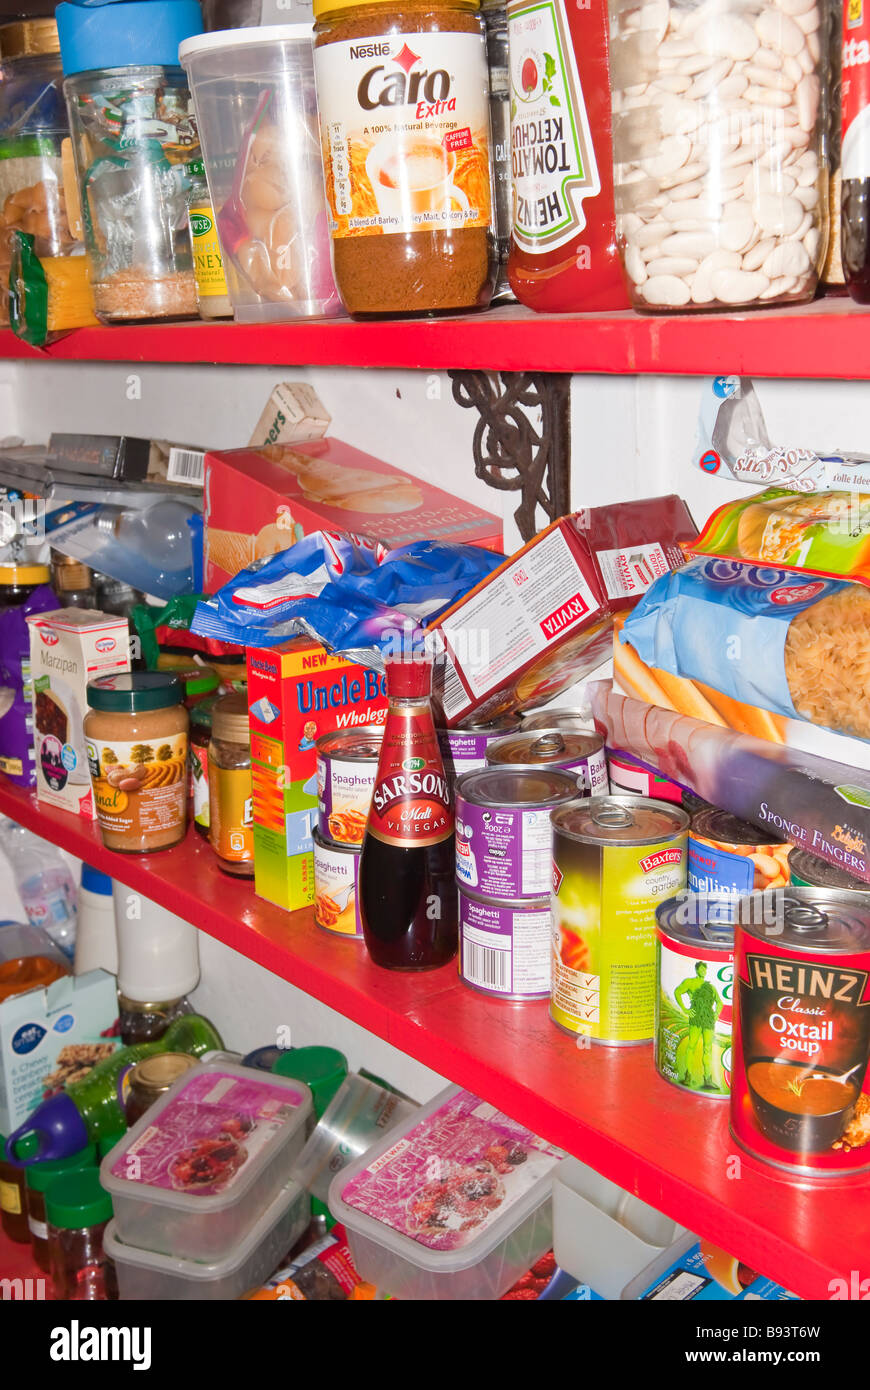 A cluttered untidy larder pantry housing lots of jars and tins etc. - Stock Image